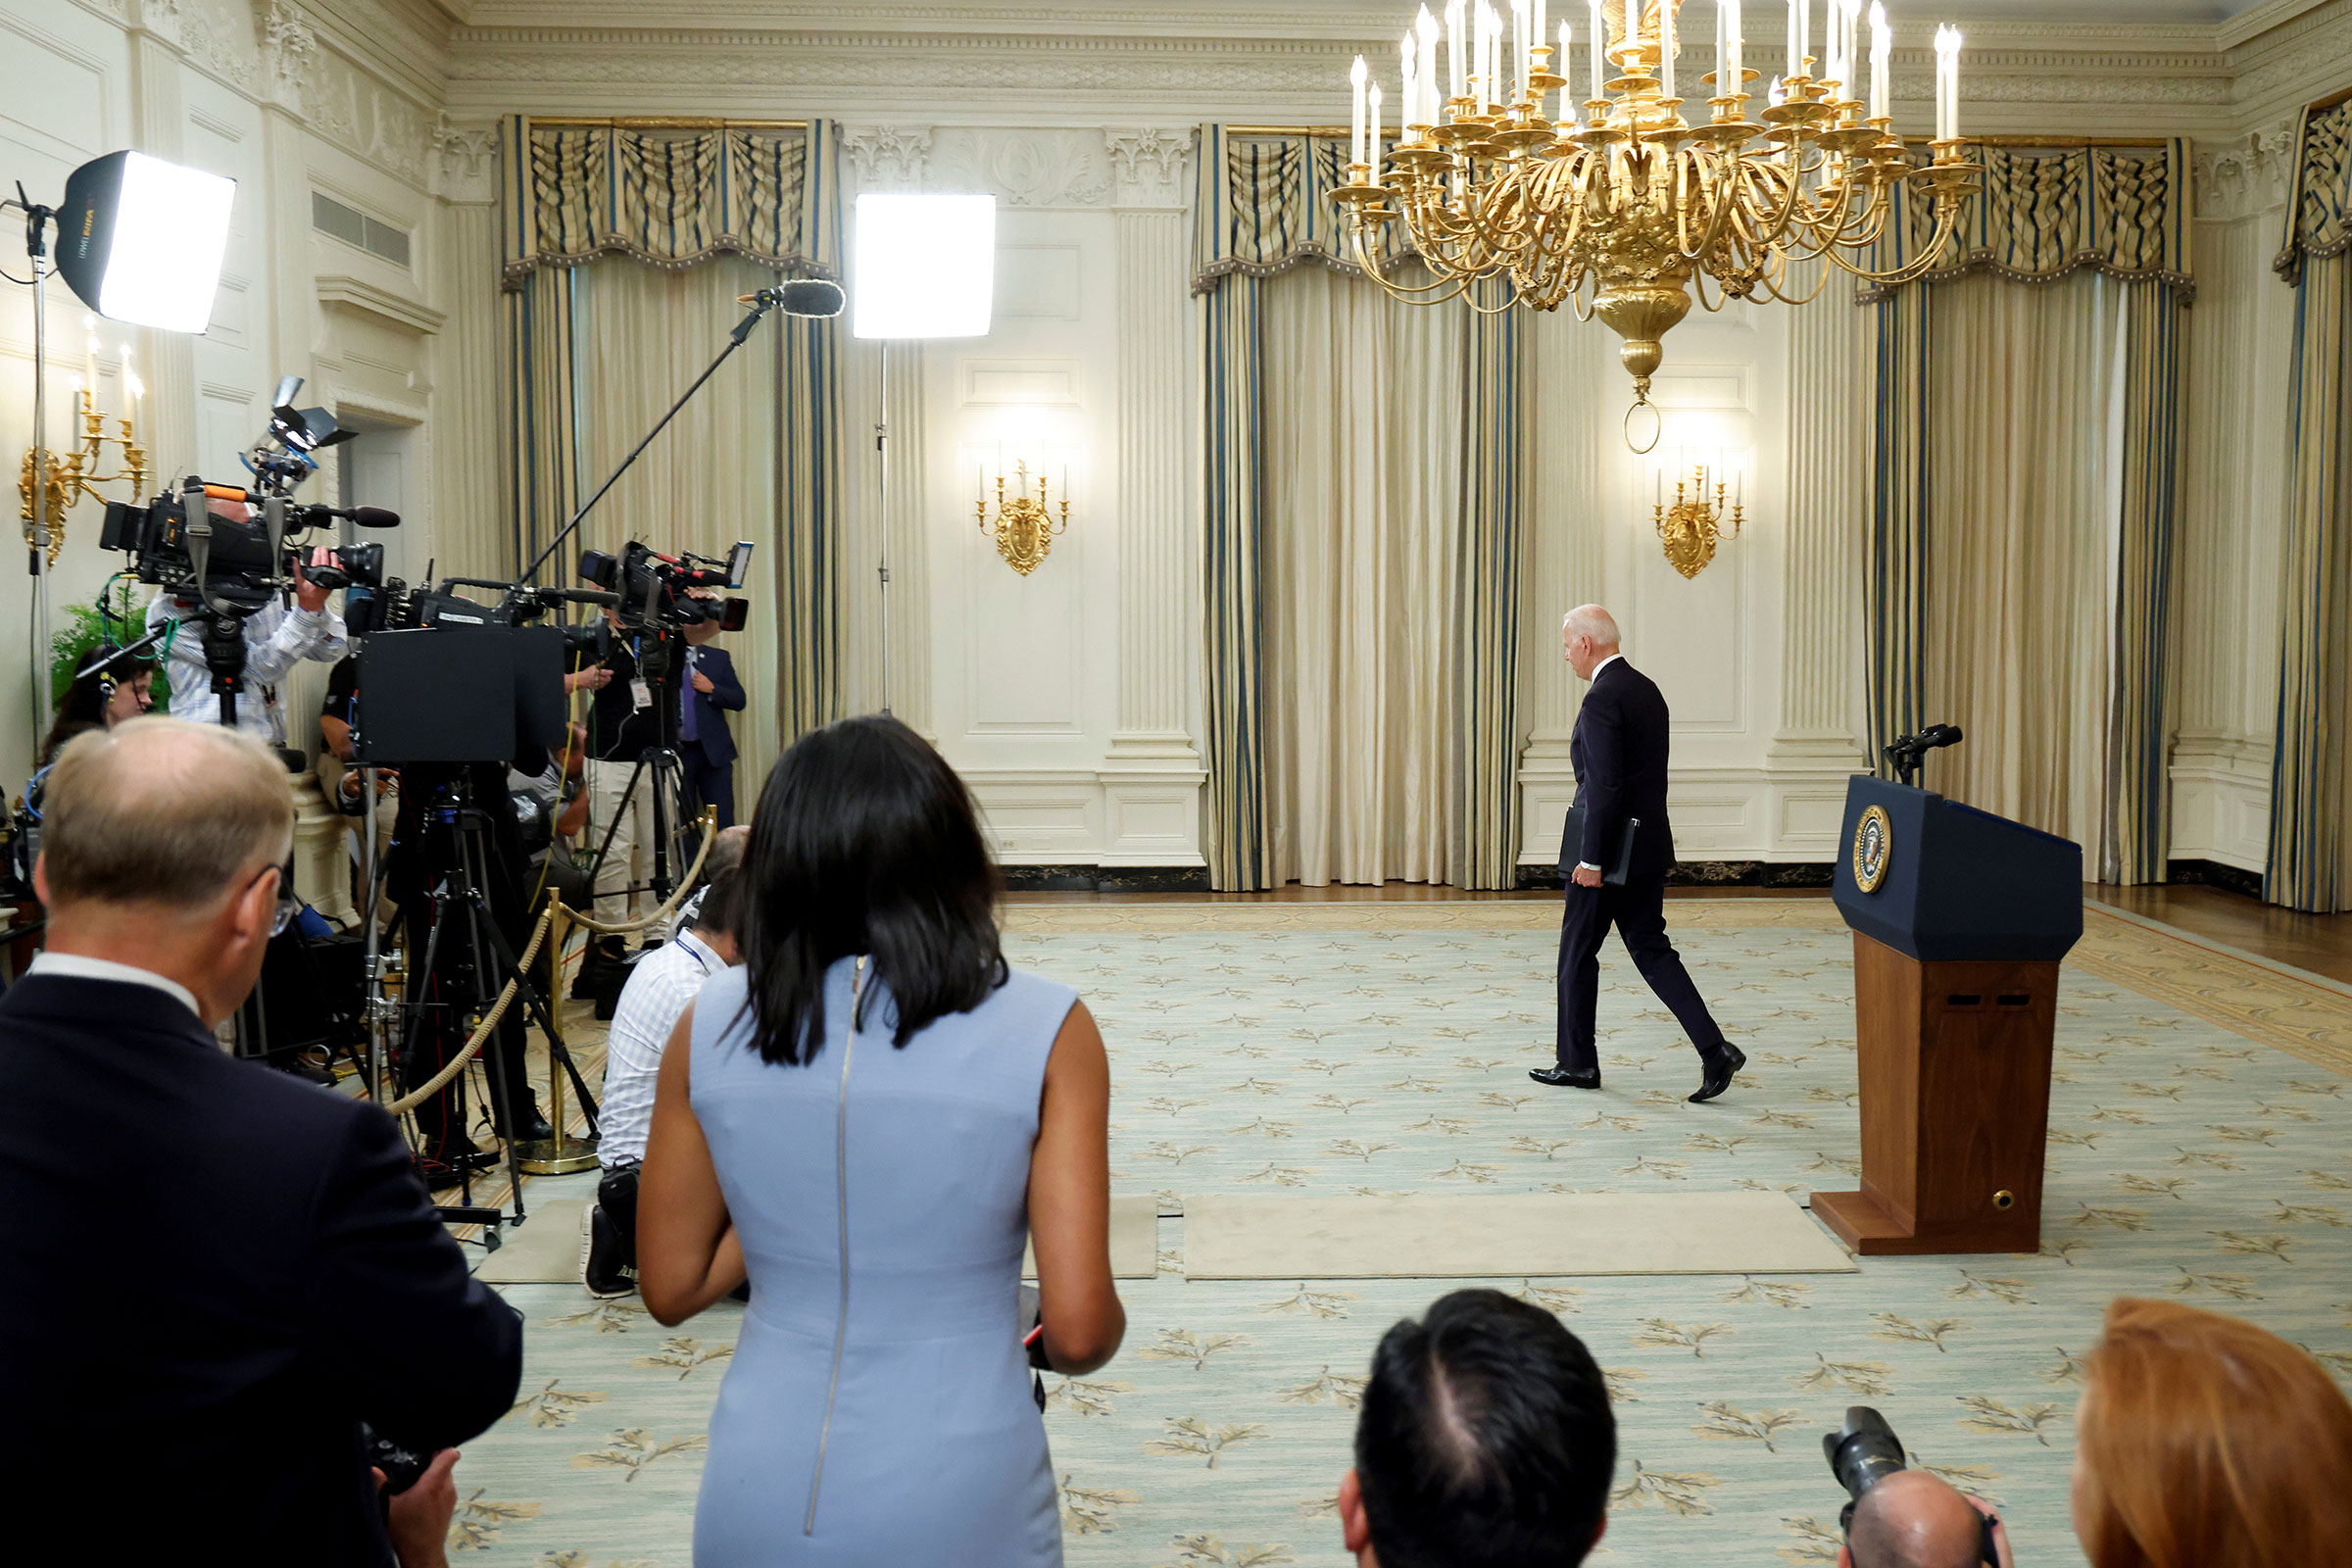 President Joe Biden departs after delivering remarks on the economy at the White House in Washington, on July 19, 2021.